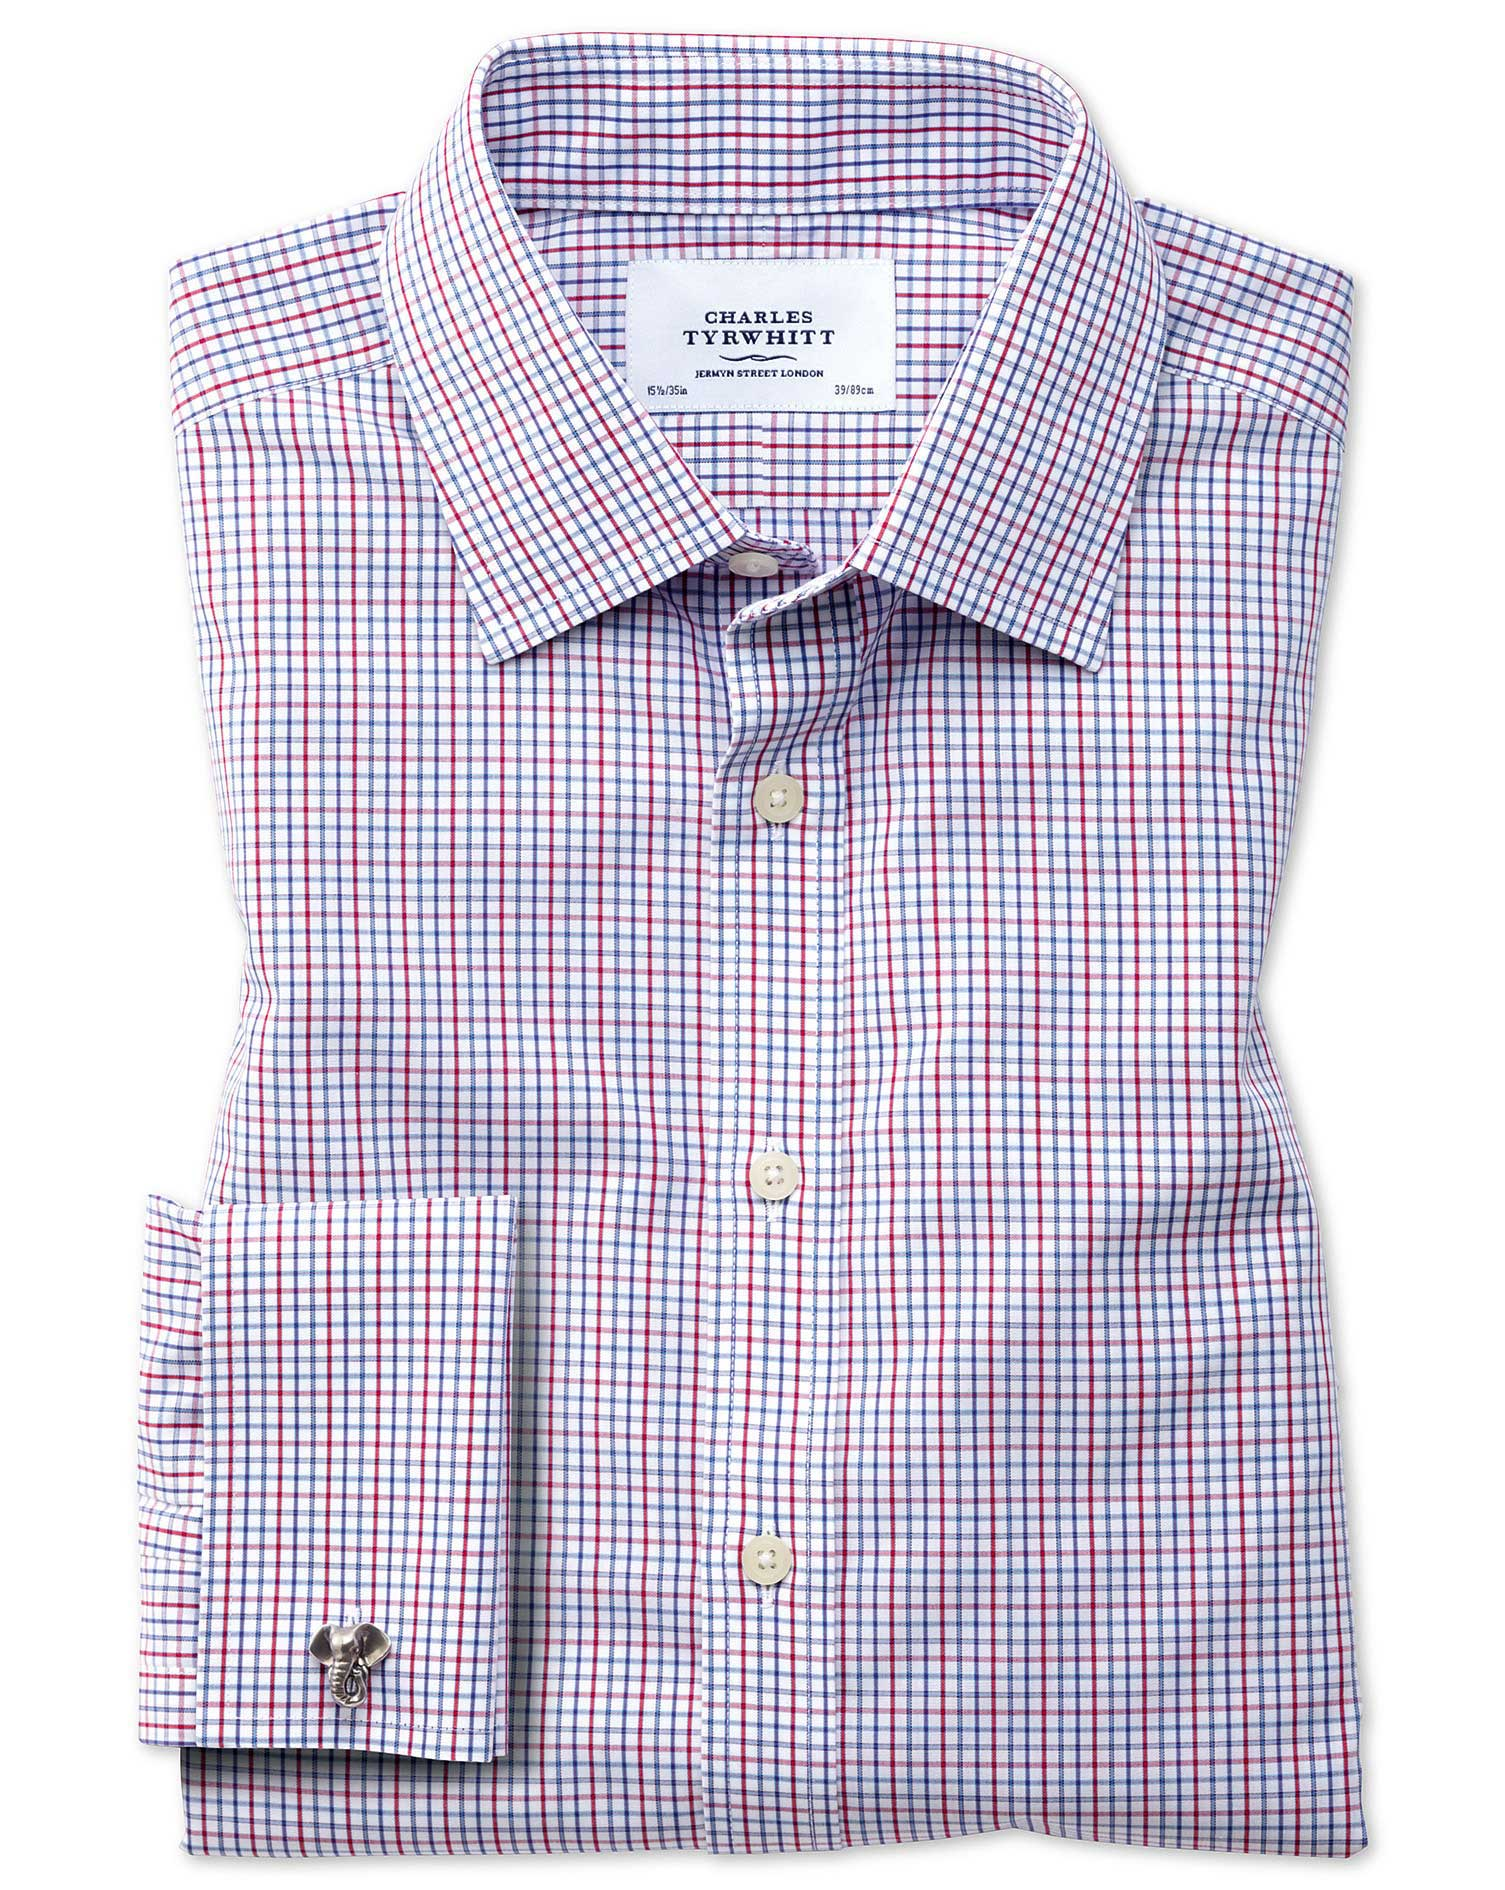 Classic Fit Non-Iron Multi Grid Check Cotton Formal Shirt Single Cuff Size 15/35 by Charles Tyrwhitt